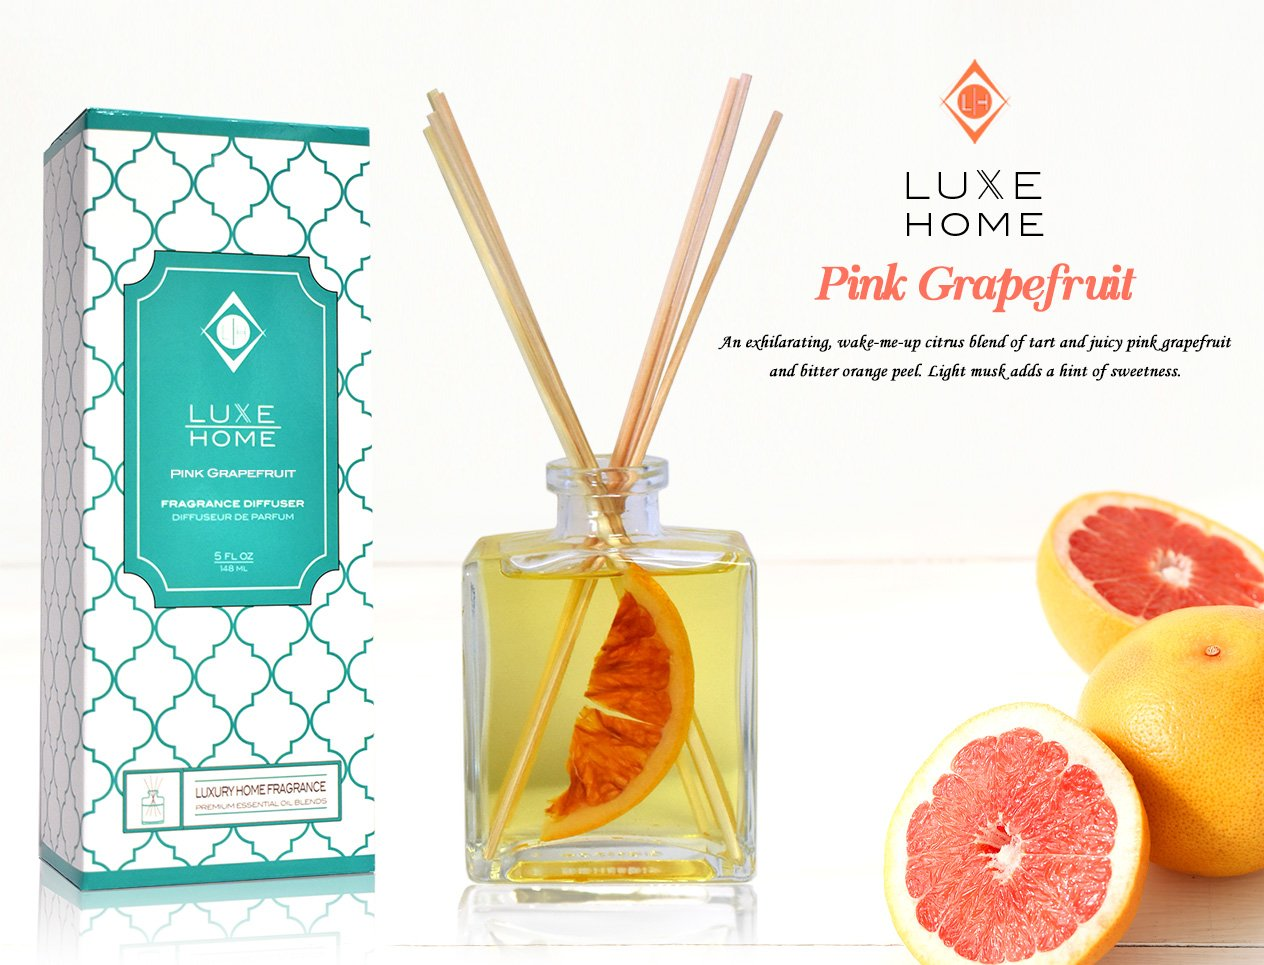 Luxe Home Pink Grapefruit Fragrance Reed Diffuser Oil Gift Set | Infused with Real Fruit Inside The Bottle | Our Scented Sticks are Eco-Friendly & Made in The USA